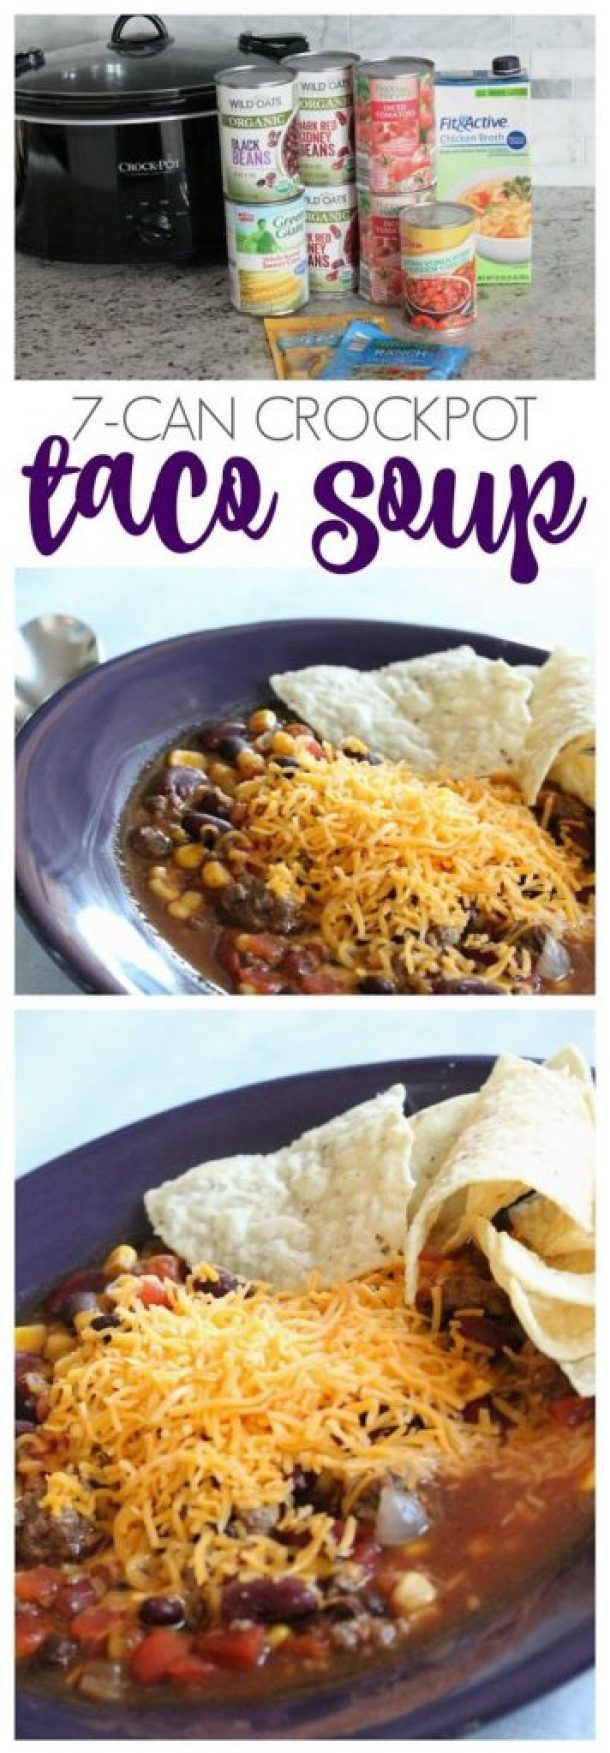 EASY 7-Can Crockpot Taco Soup Recipe | Passion for Savings